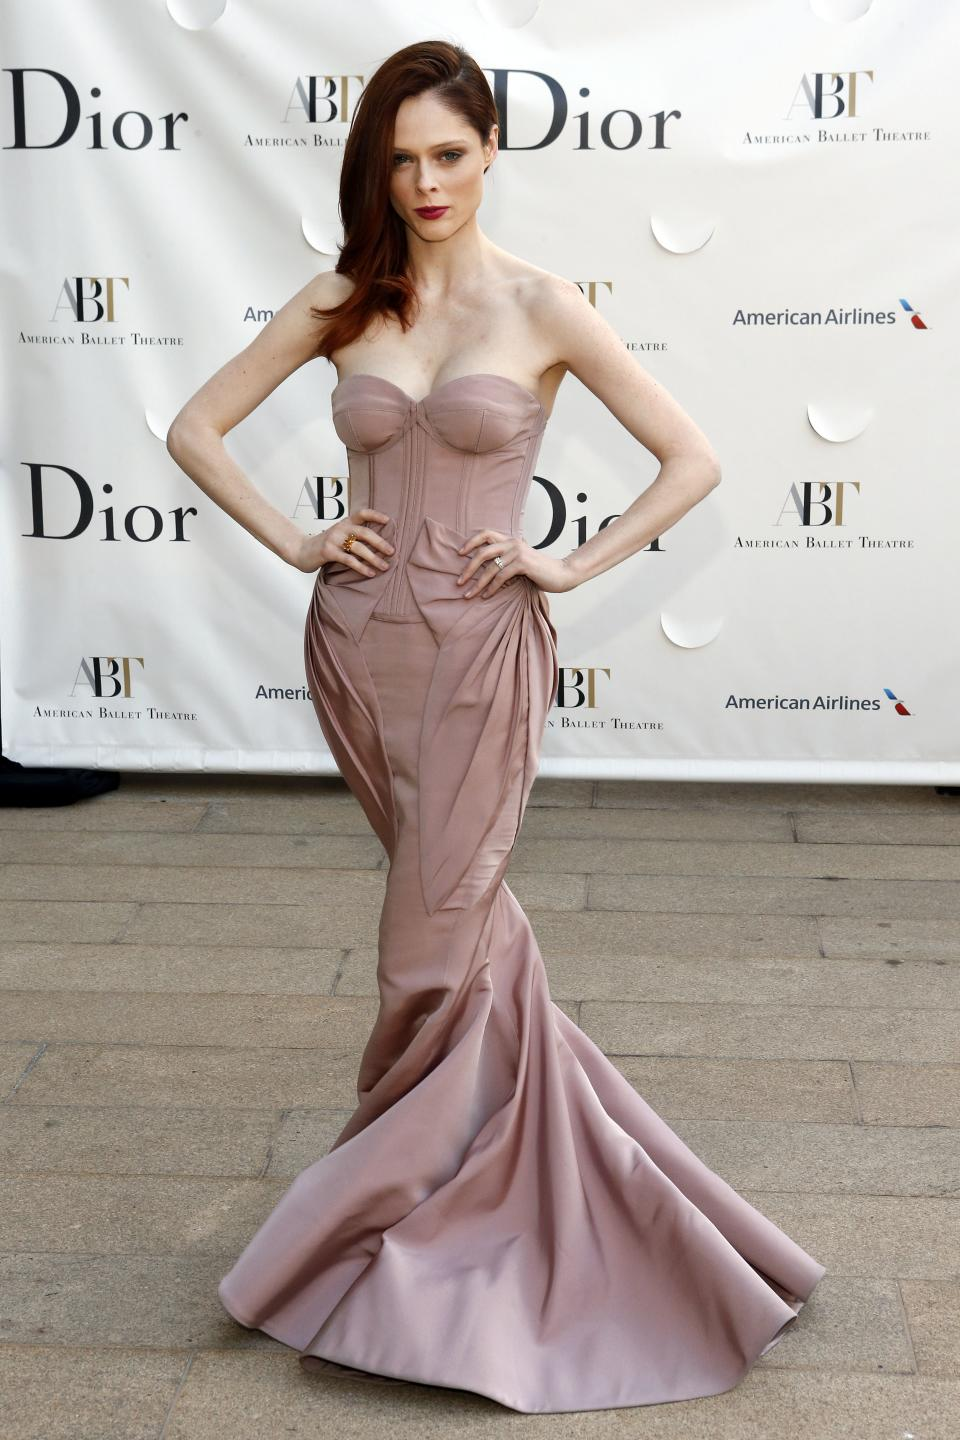 Model Coco Rocha arrives for the American Ballet Theatre Spring Gala at the Metropolitan Opera House, Monday, May 13, 2013 in New York. (Photo by Jason DeCrow/Invision/AP)